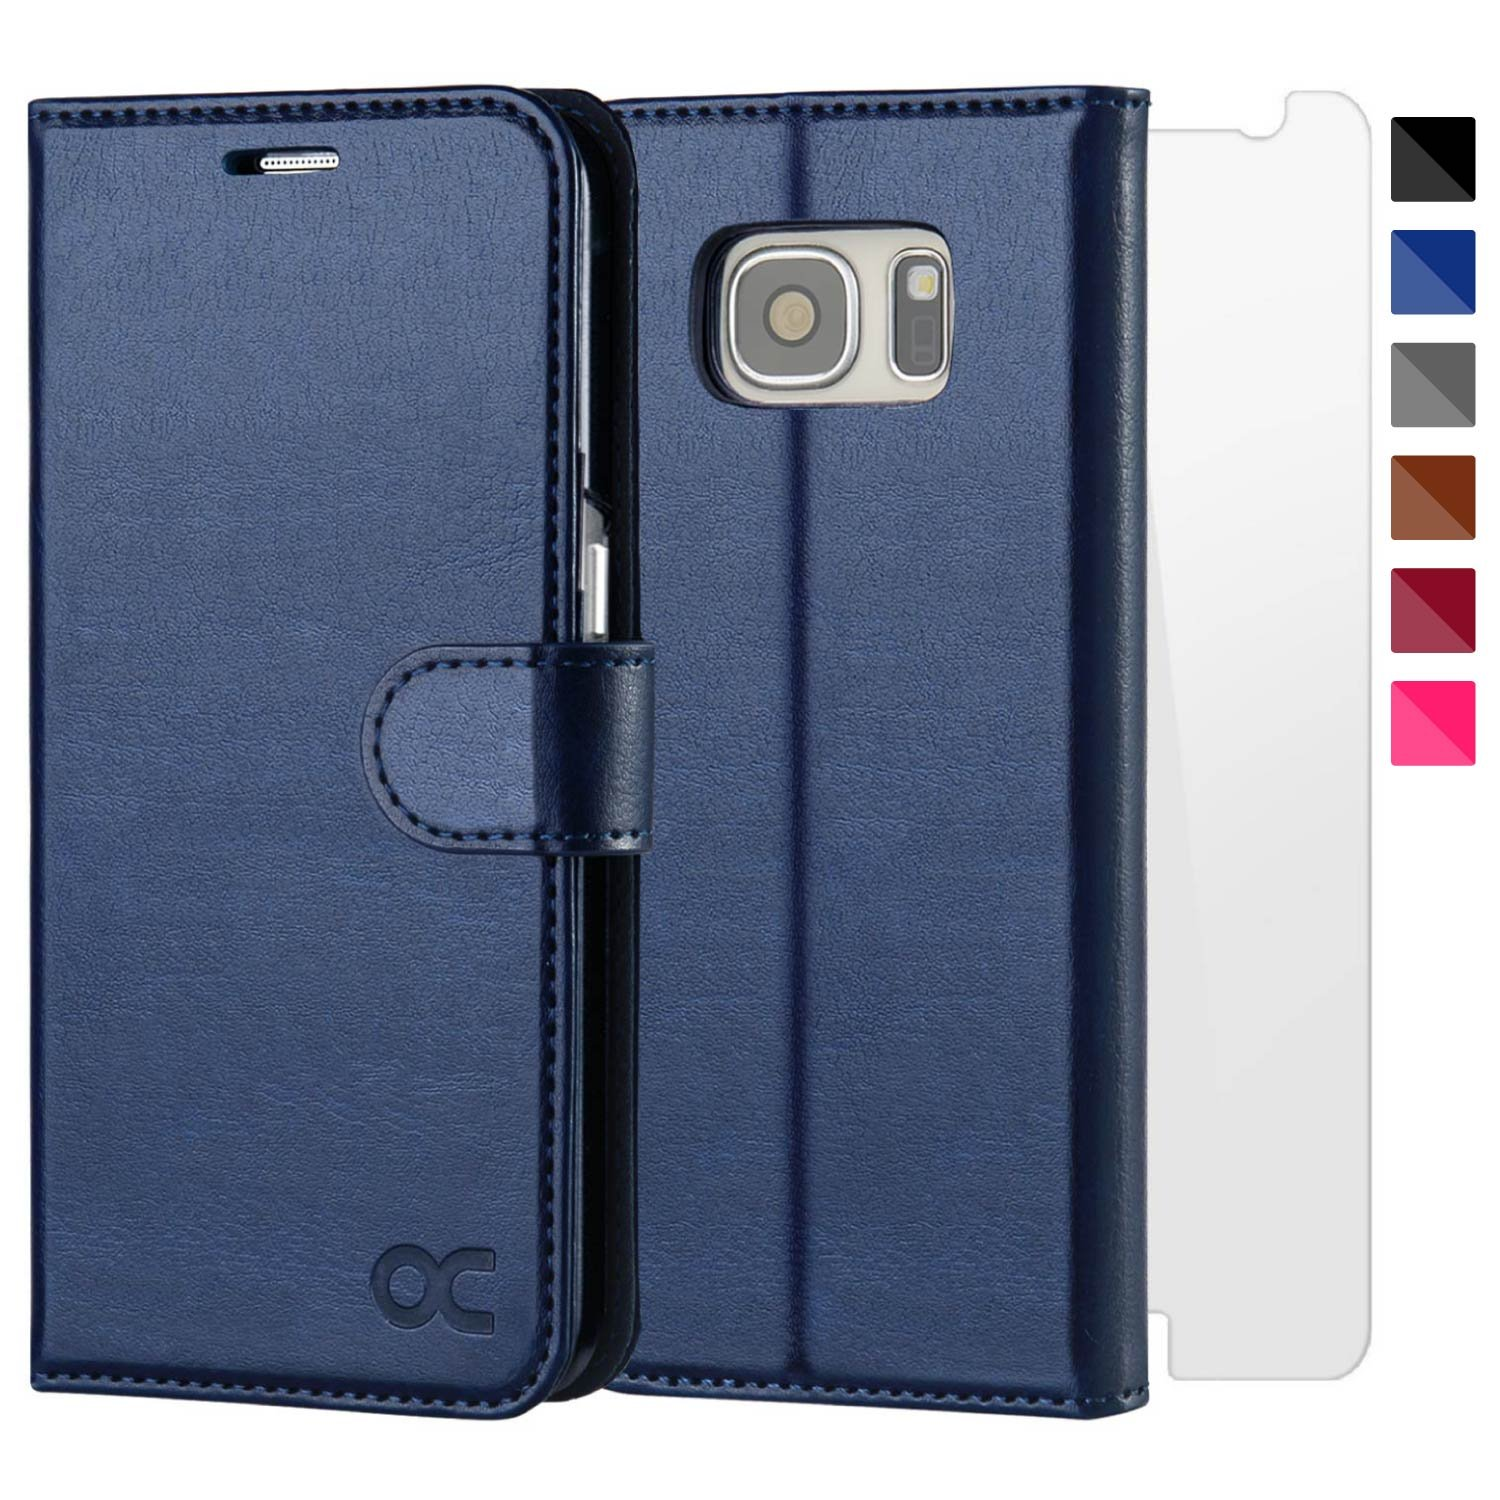 OCASE Samsung Galaxy S7 Case [Screen Protector Included] Leather Flip Wallet Case For Samsung Galaxy S7 - Blue